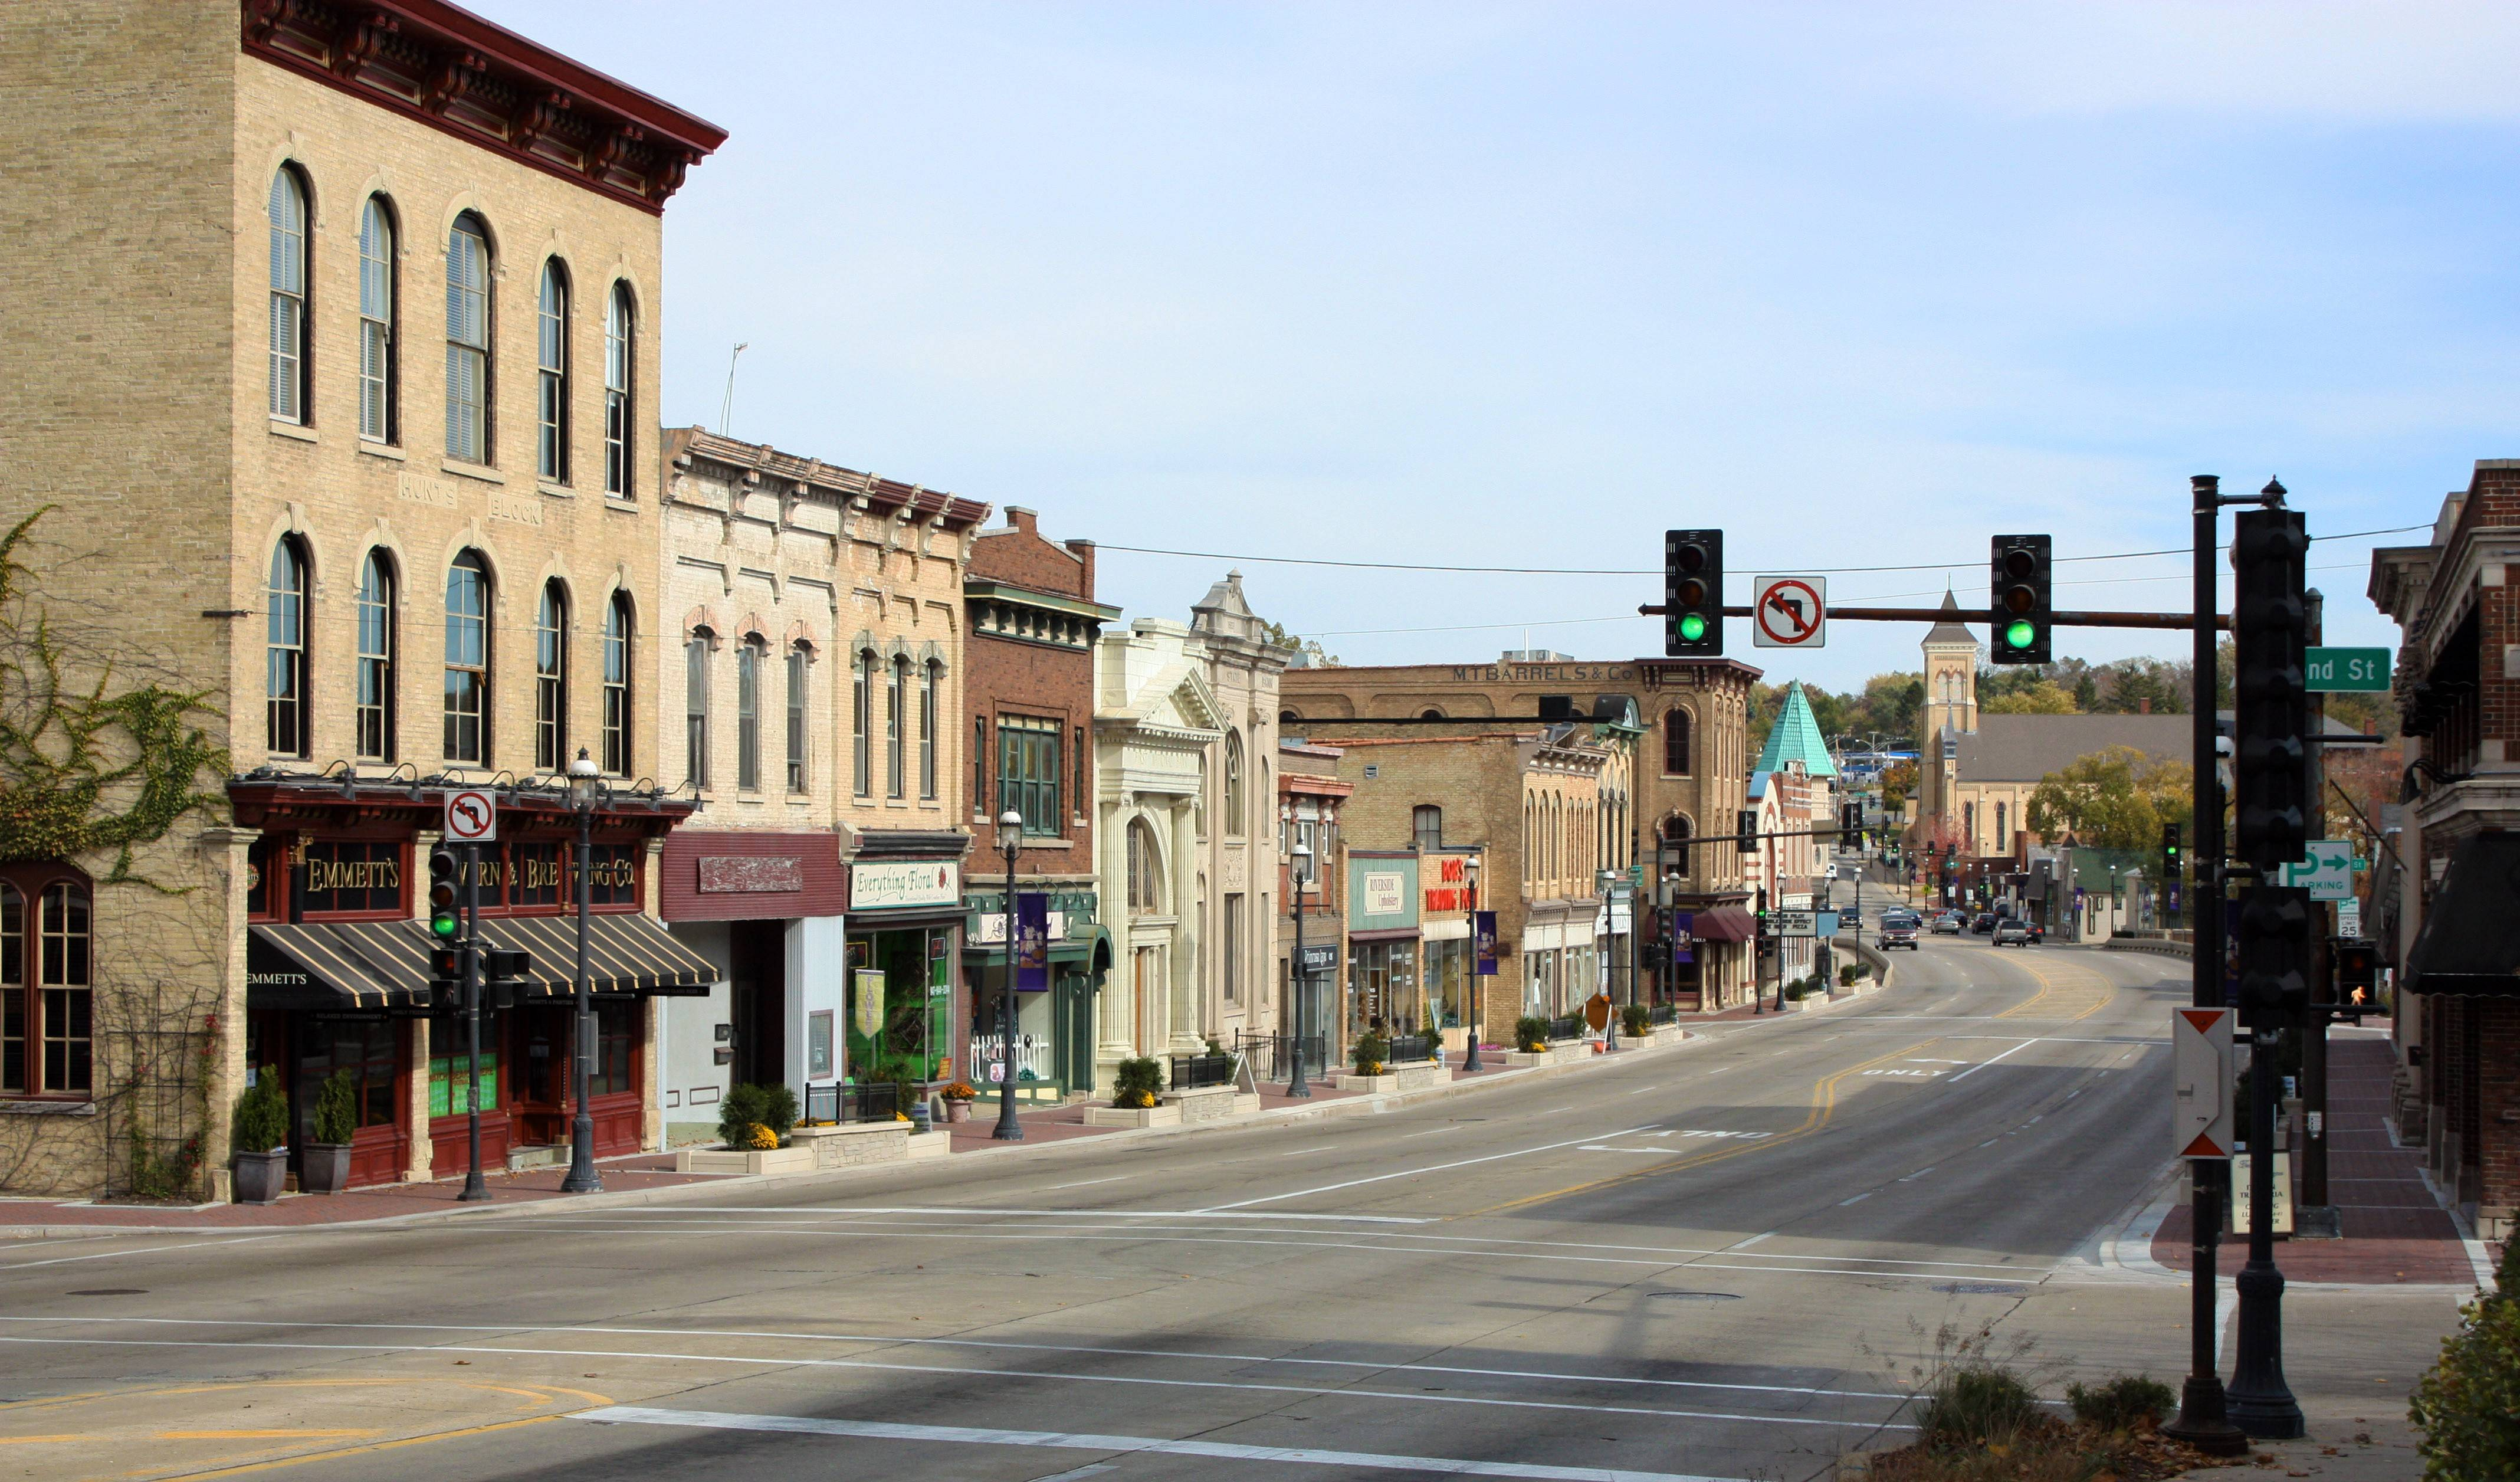 The downtown redevelopment plan for the village of West Dundee encourages and provides the opportunity for public engagement to assist in shaping the future of West Dundee's Downtown Commercial District, which is listed on the National Register of Historic Places.